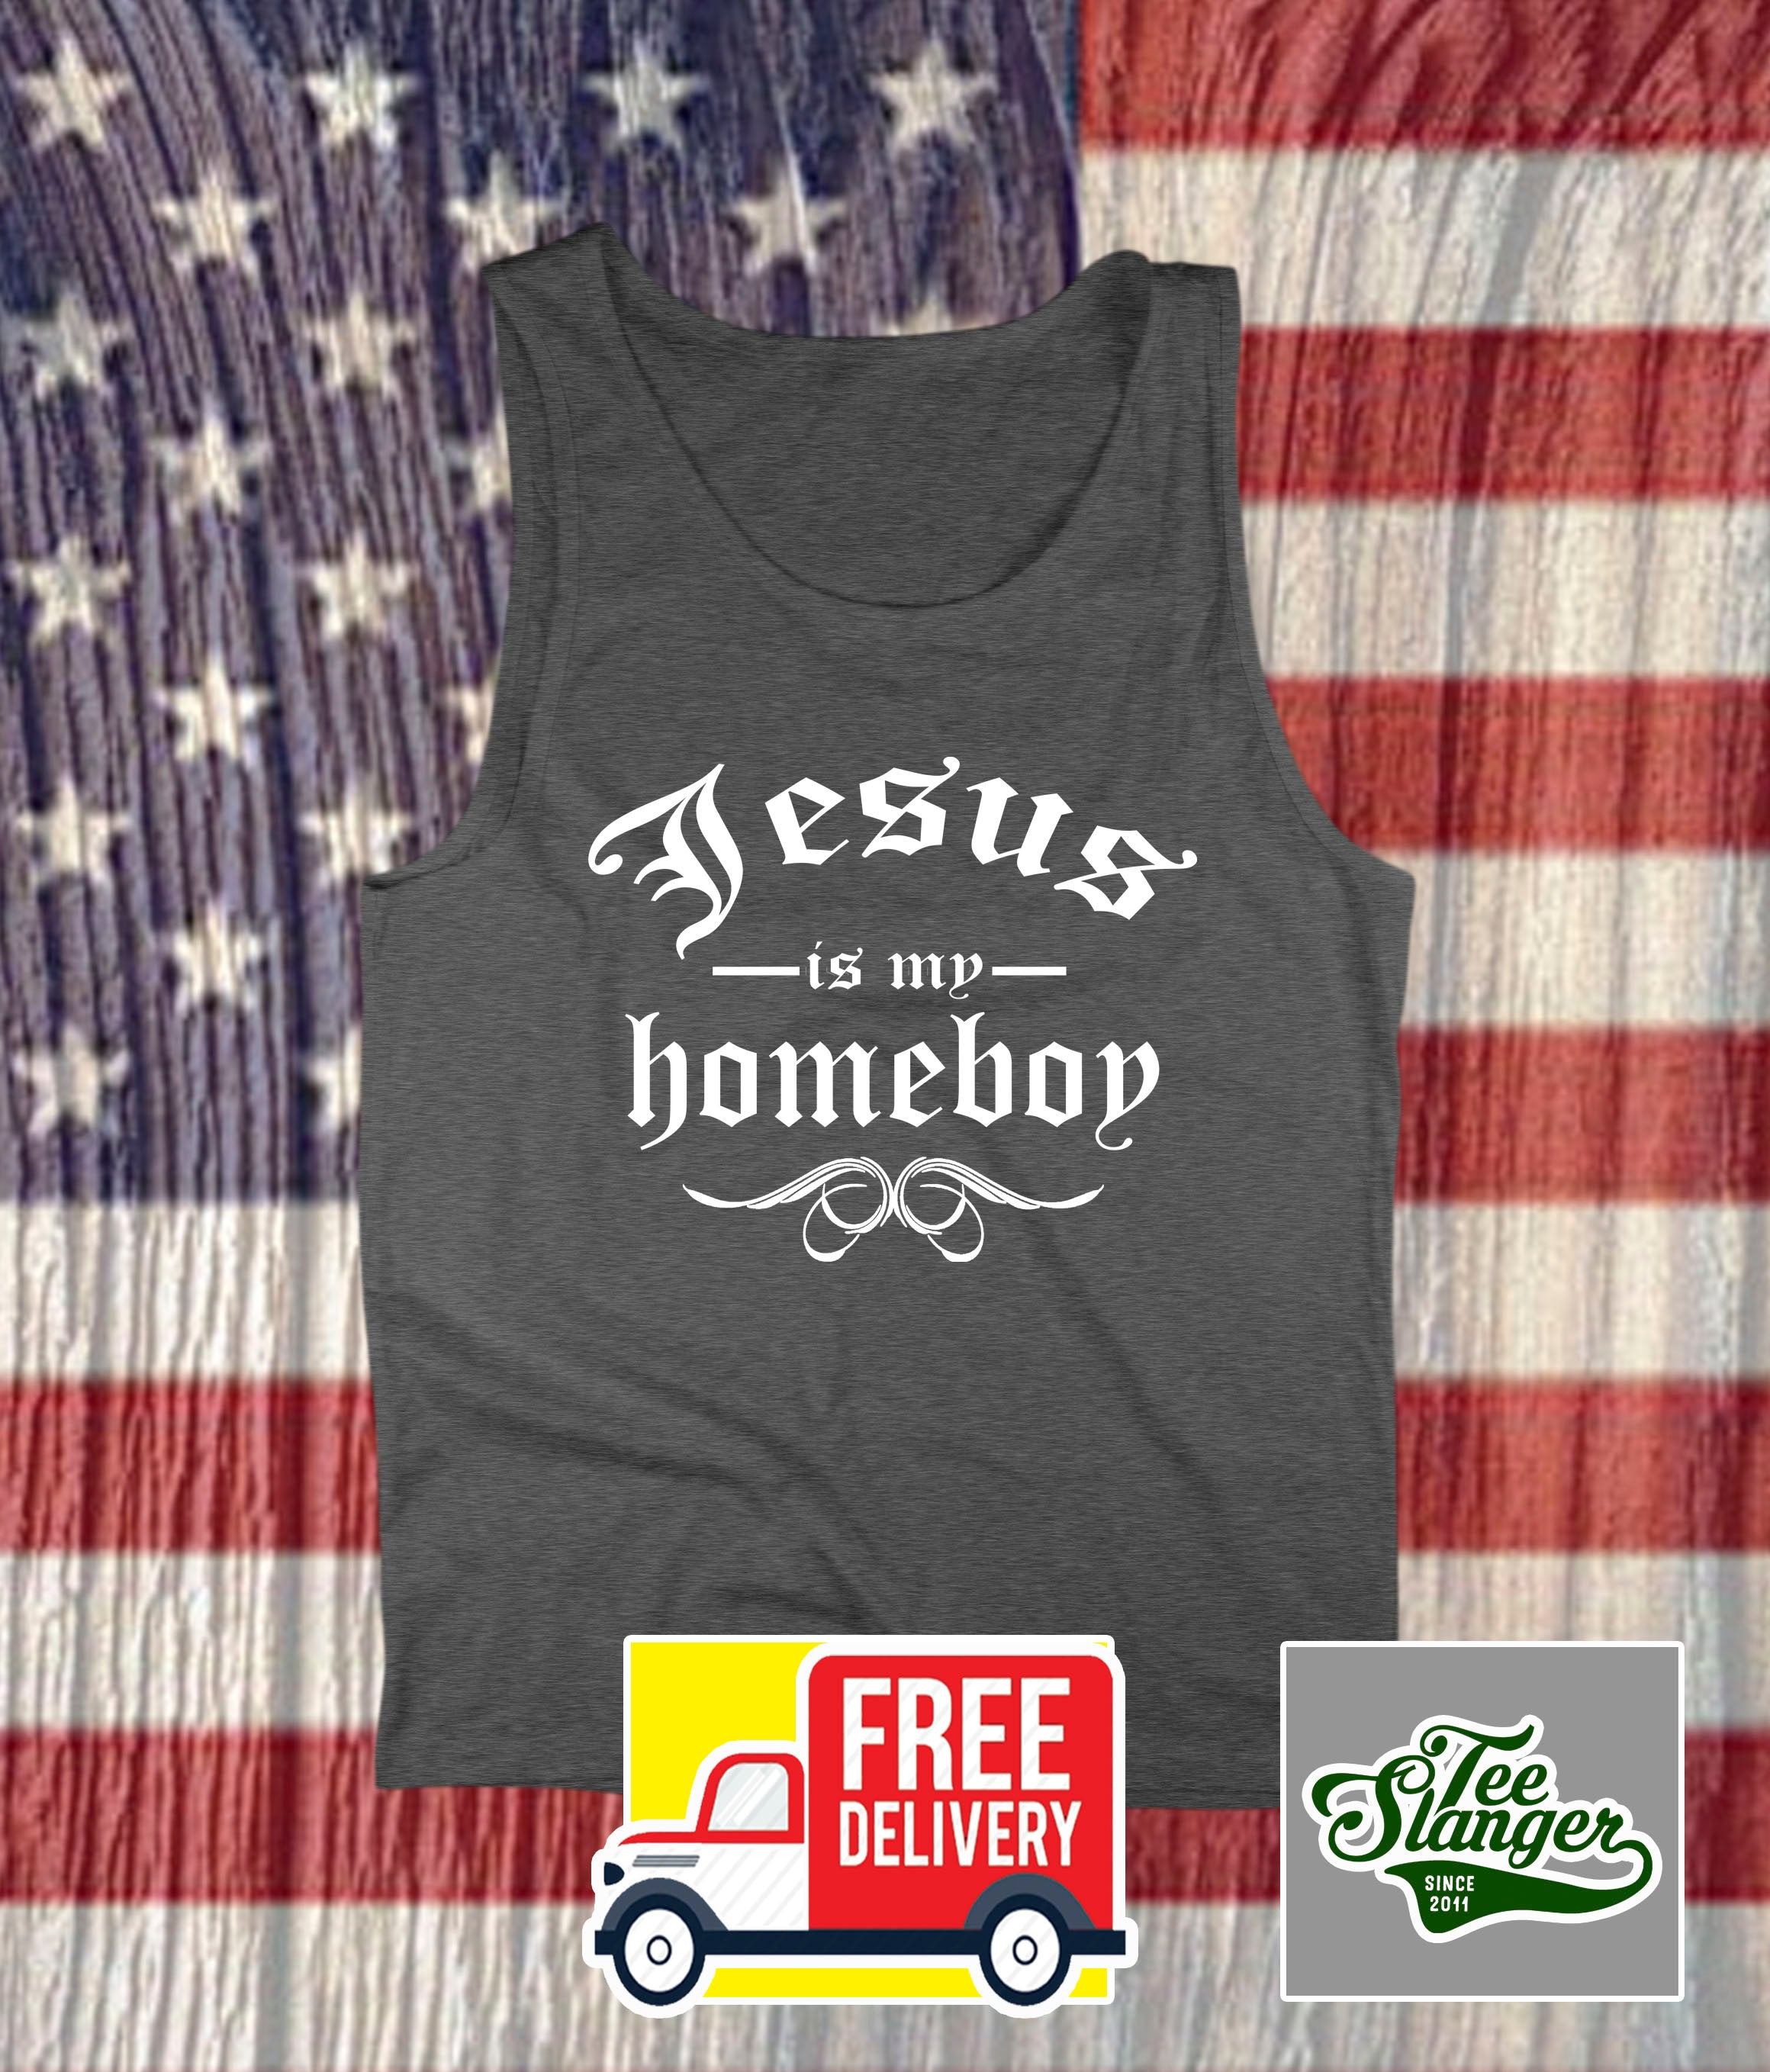 JESUS IS MY HOMEBOY CHARCOAL GREY TANK TOP